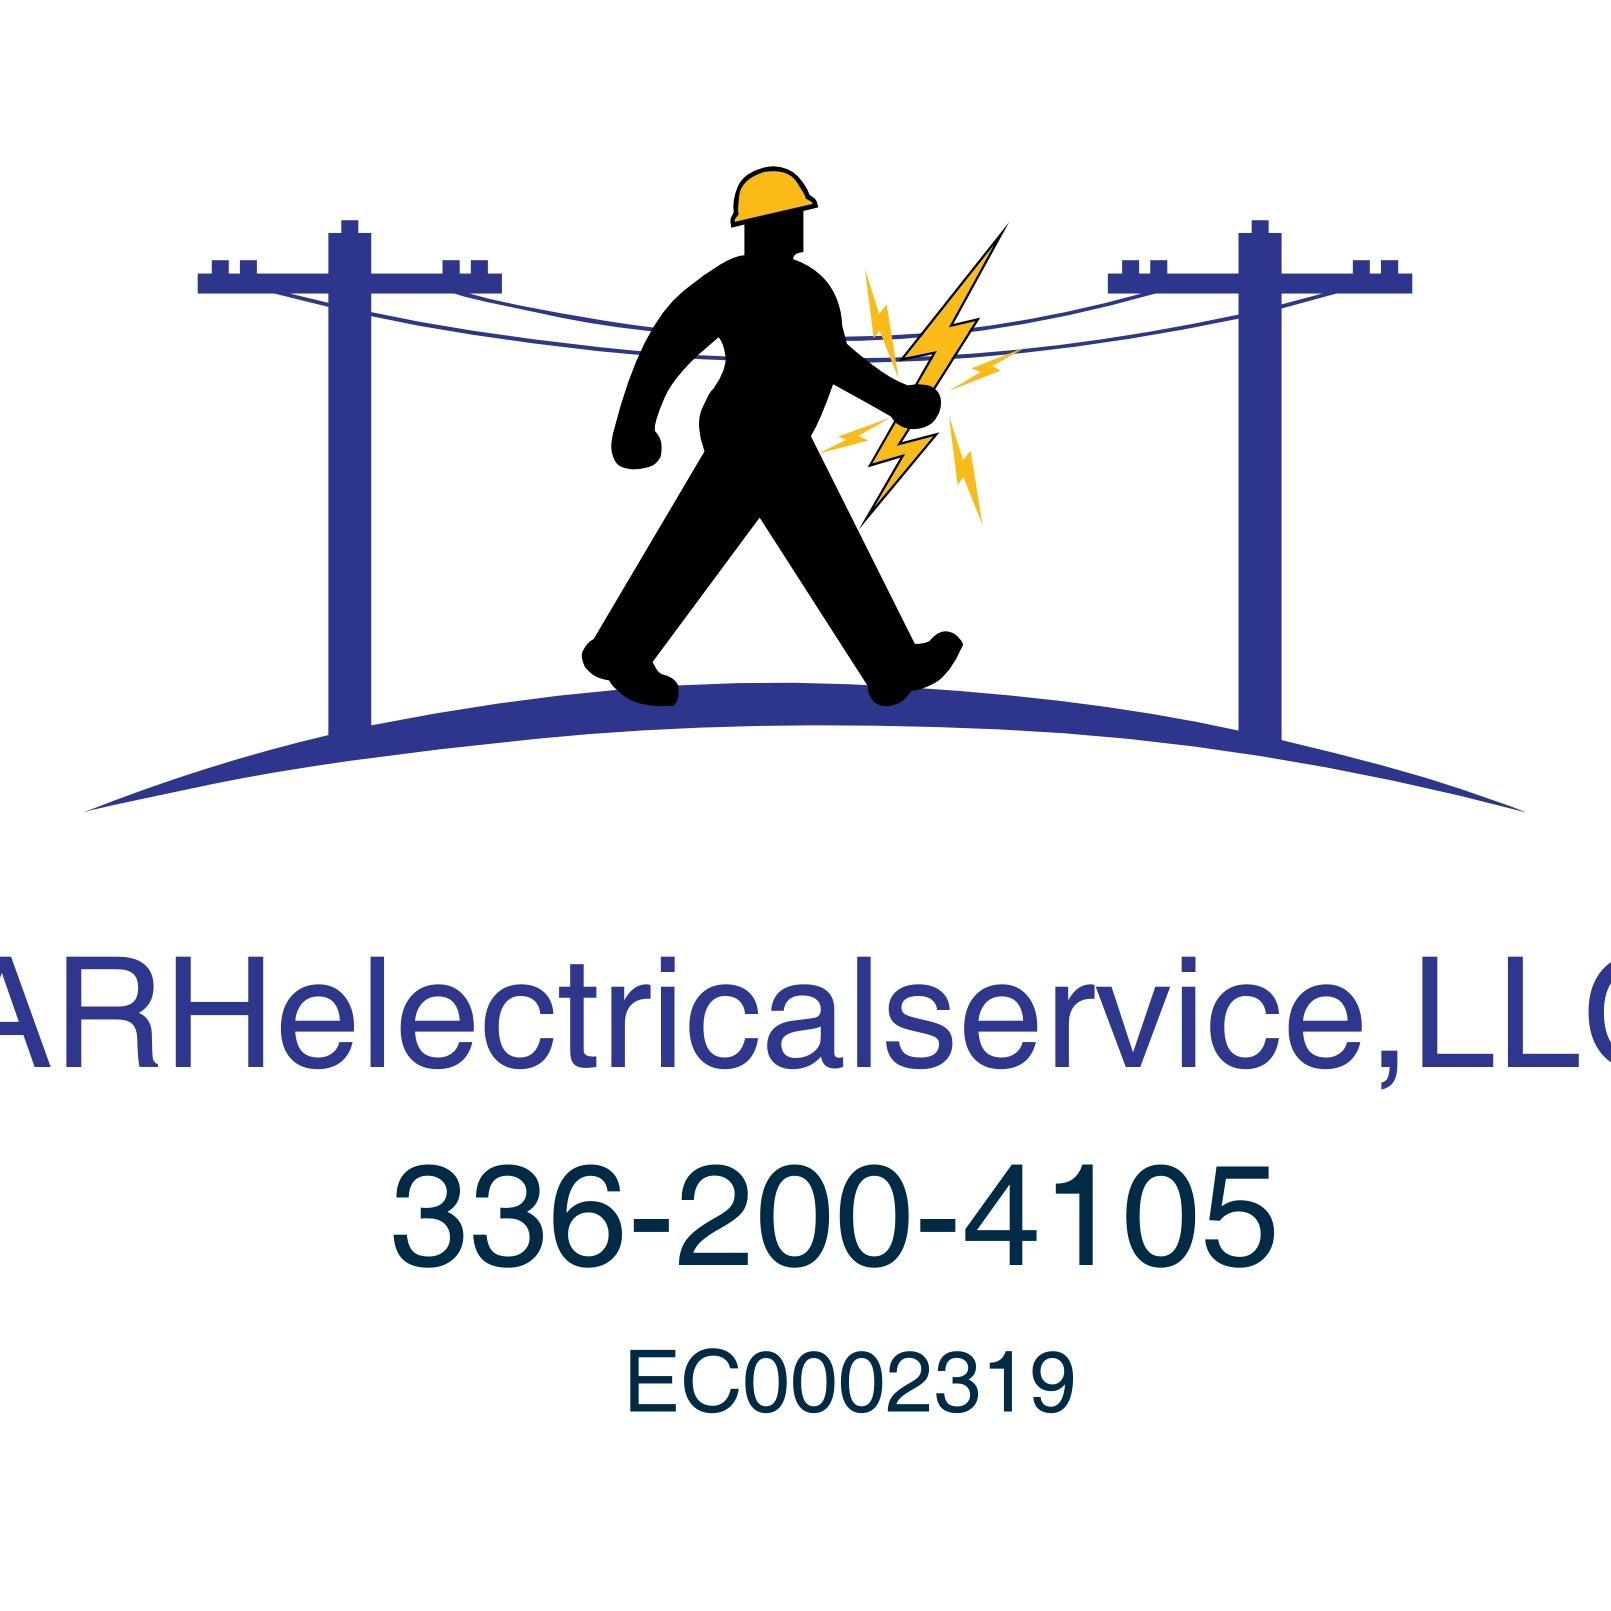 ARH Electrical Service, LLC